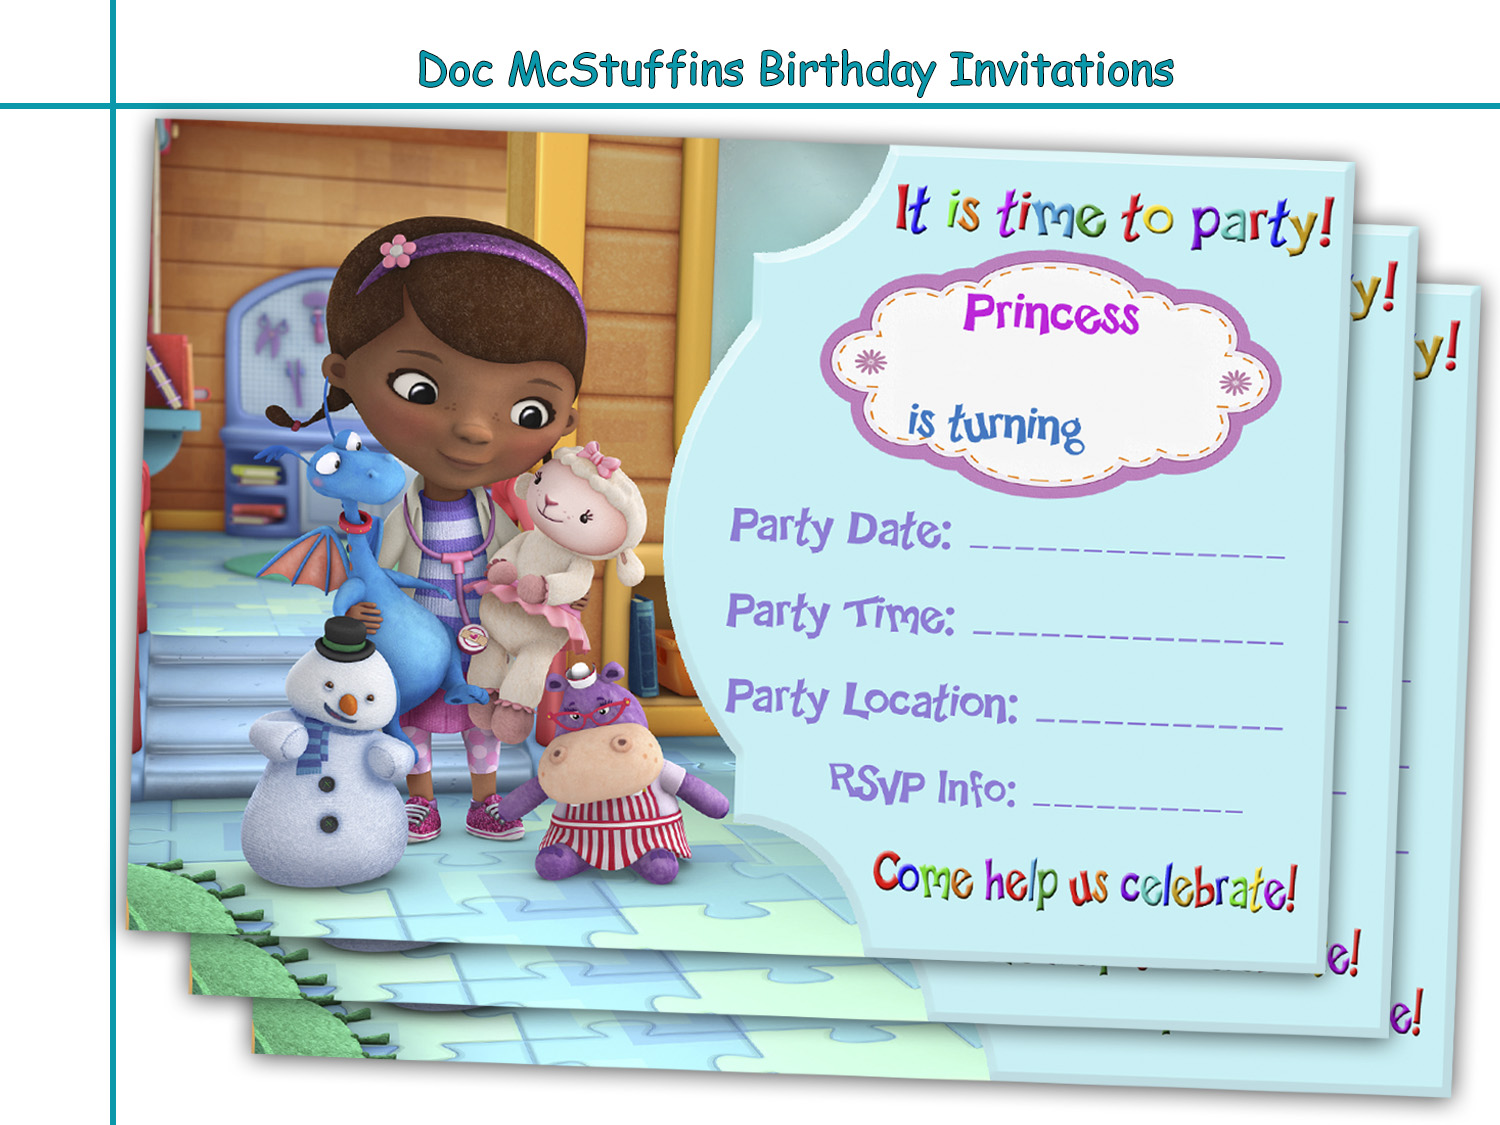 Amazing Doc McStuffins Birthday by HolidayPartyStar on Zibbet